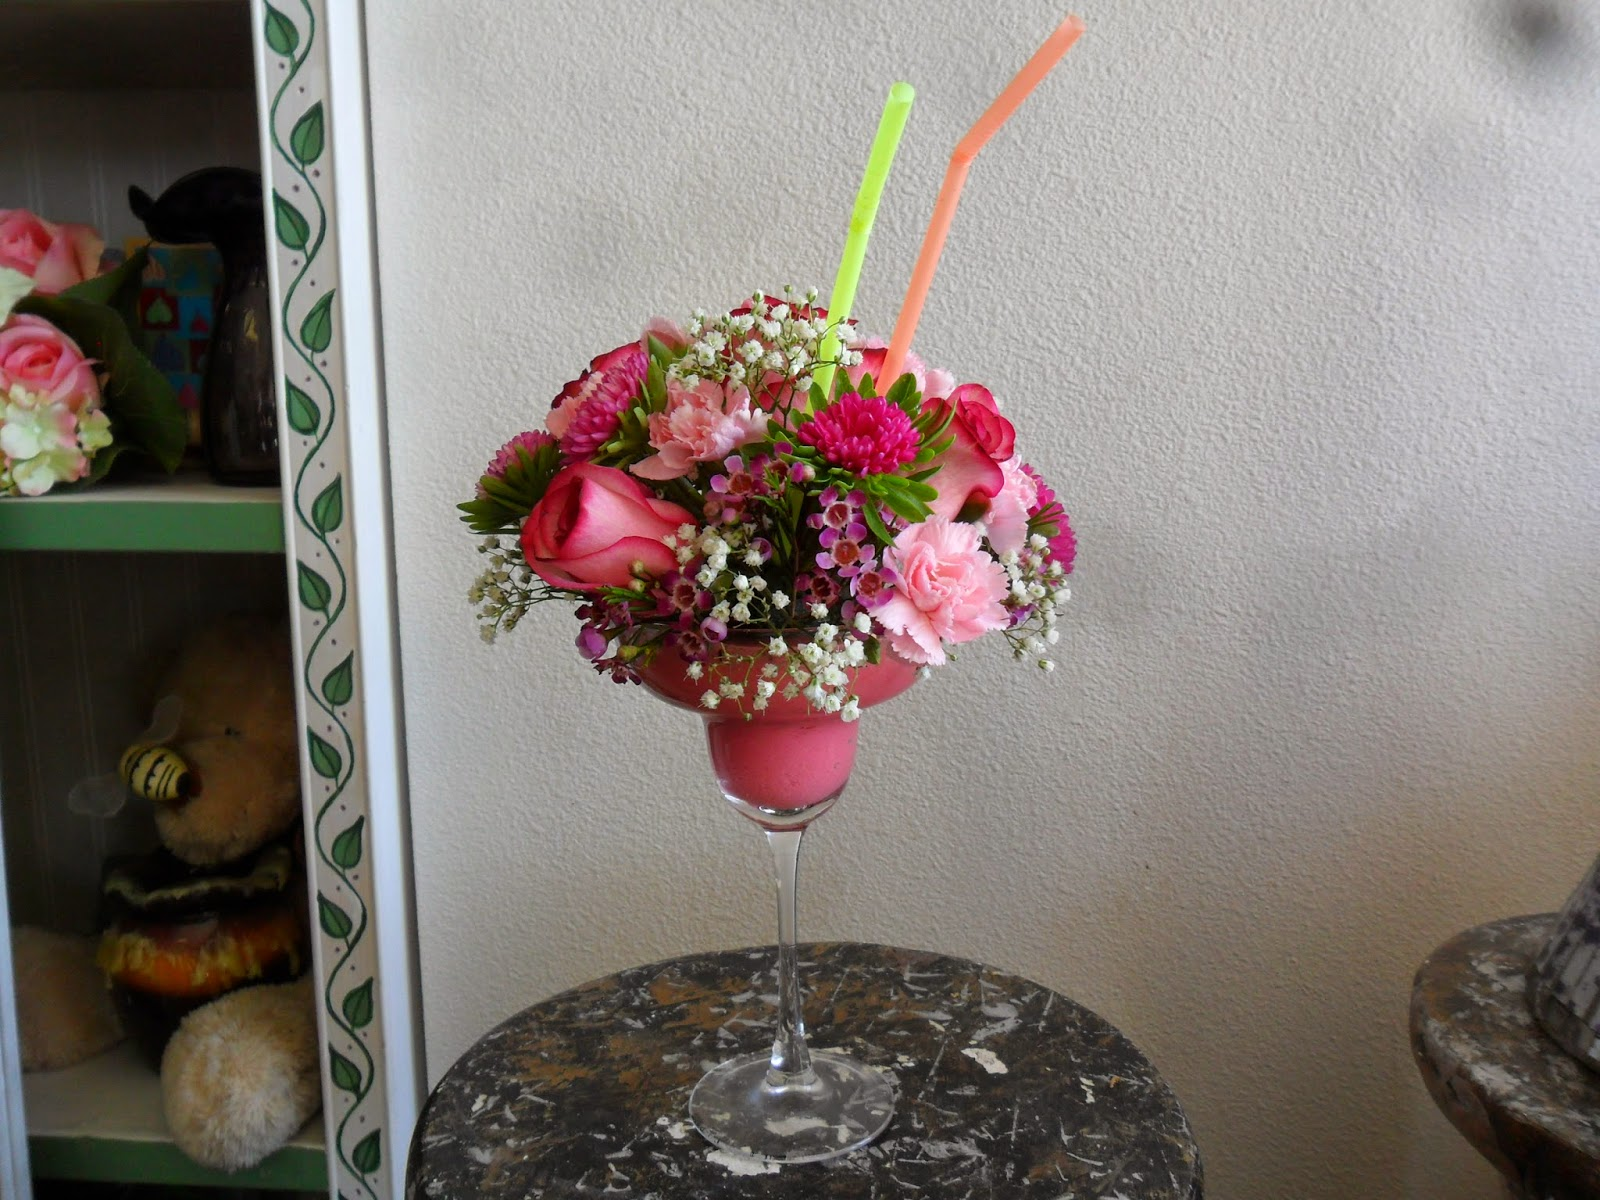 this adorable strawberry margarita flower arrangement is perfect for a 21st birthday it is also great for a best friend or loved one on their birthday or